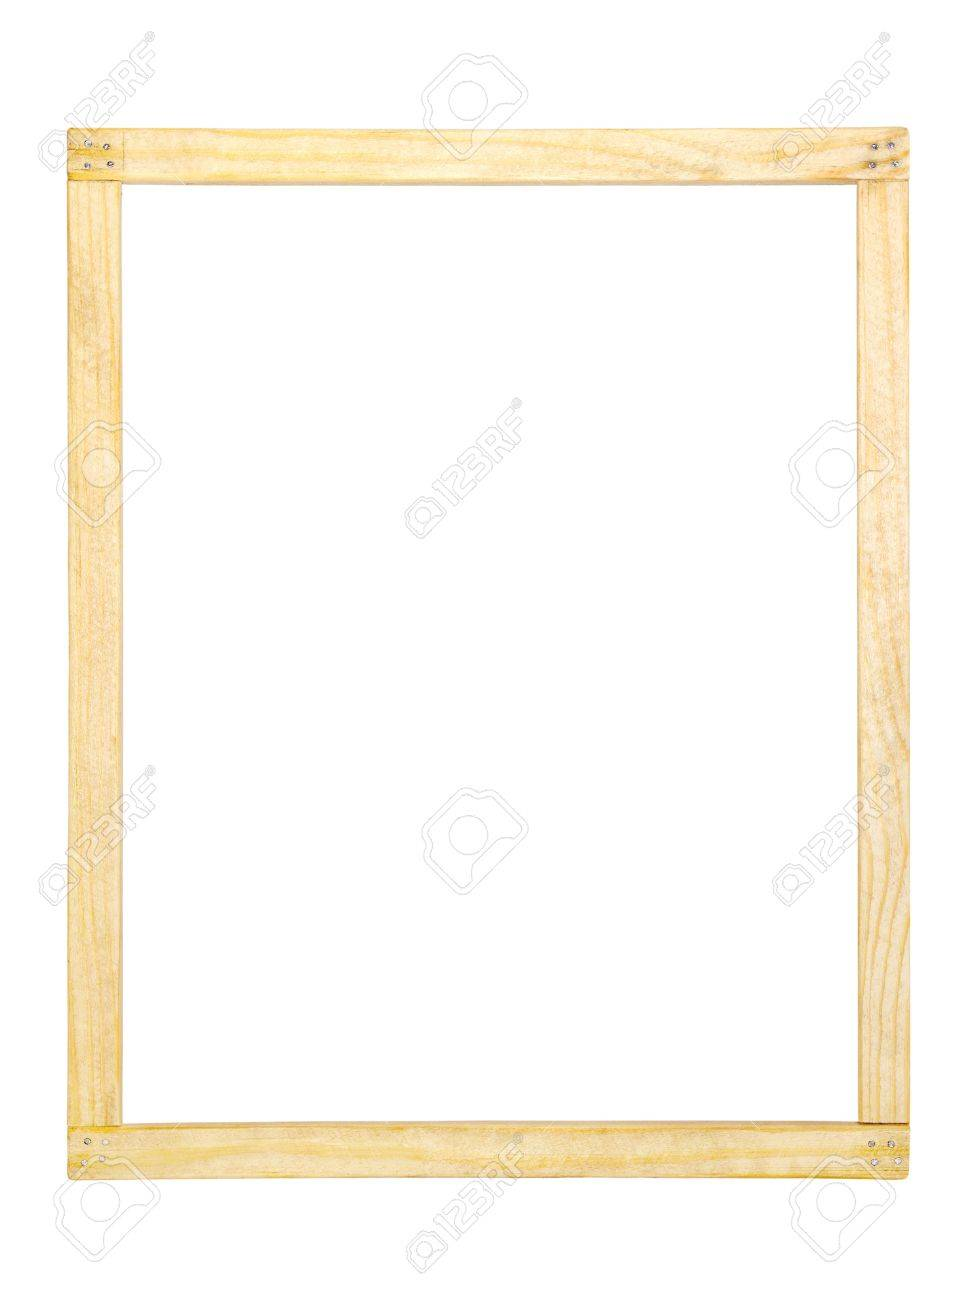 Simple Homemade Wooden Frame On White Background Stock Photo ...